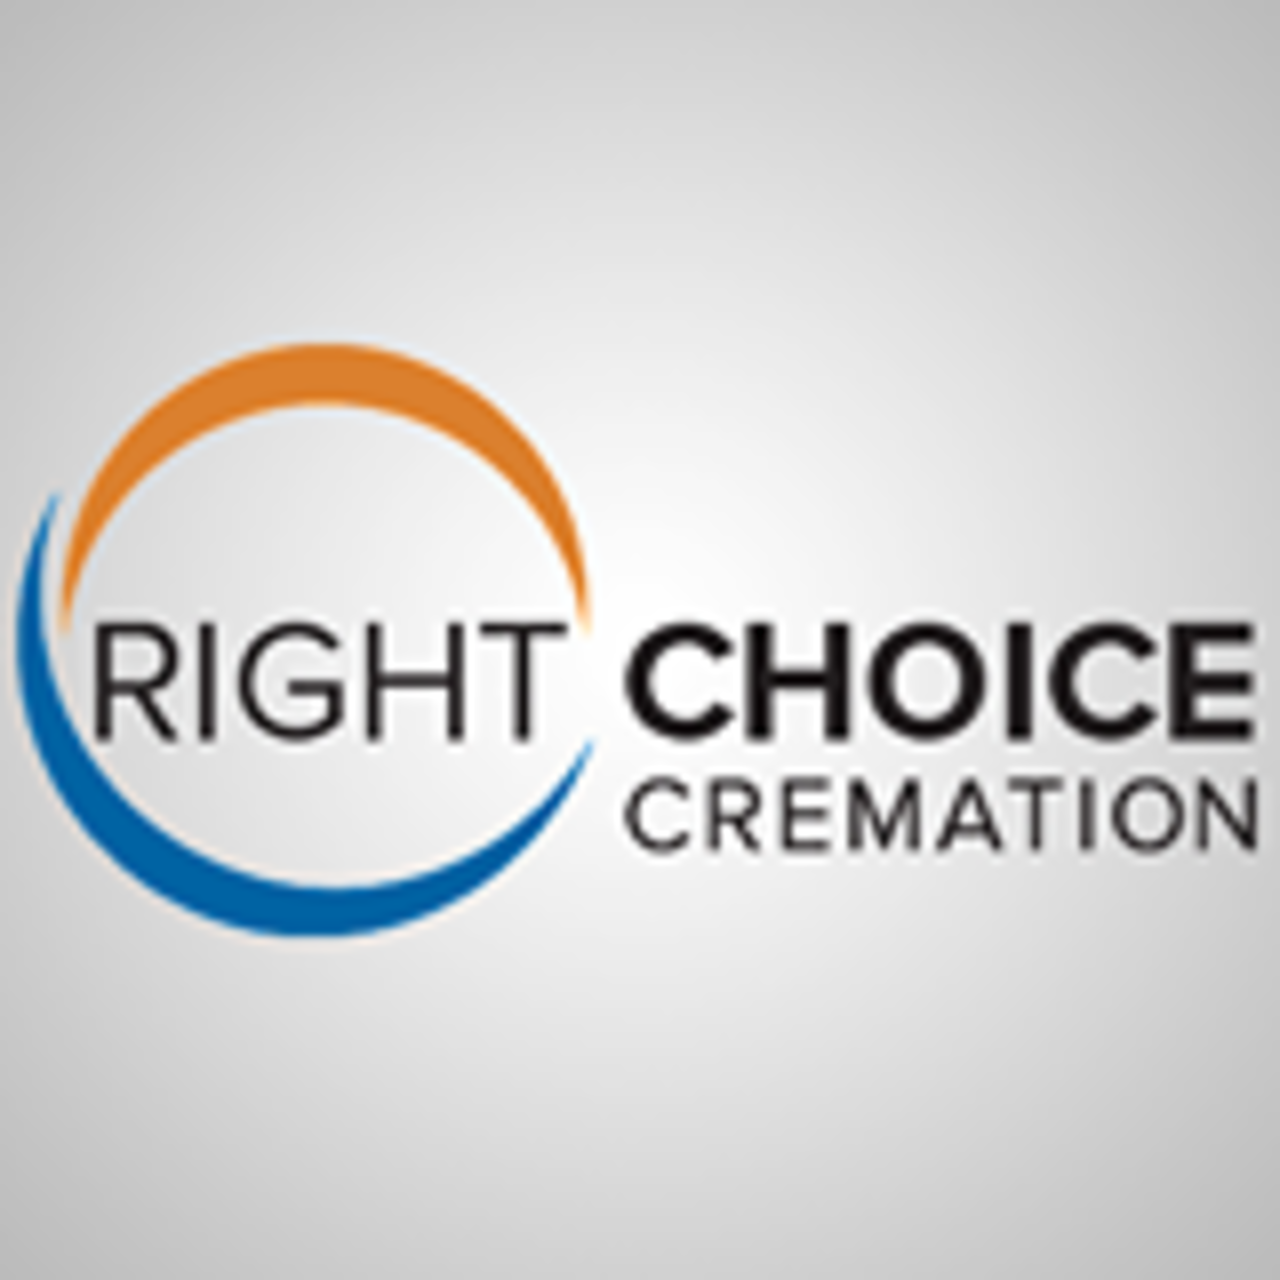 Right Choice Cremation - Ocala - Services - Business Associations in Ocala FL